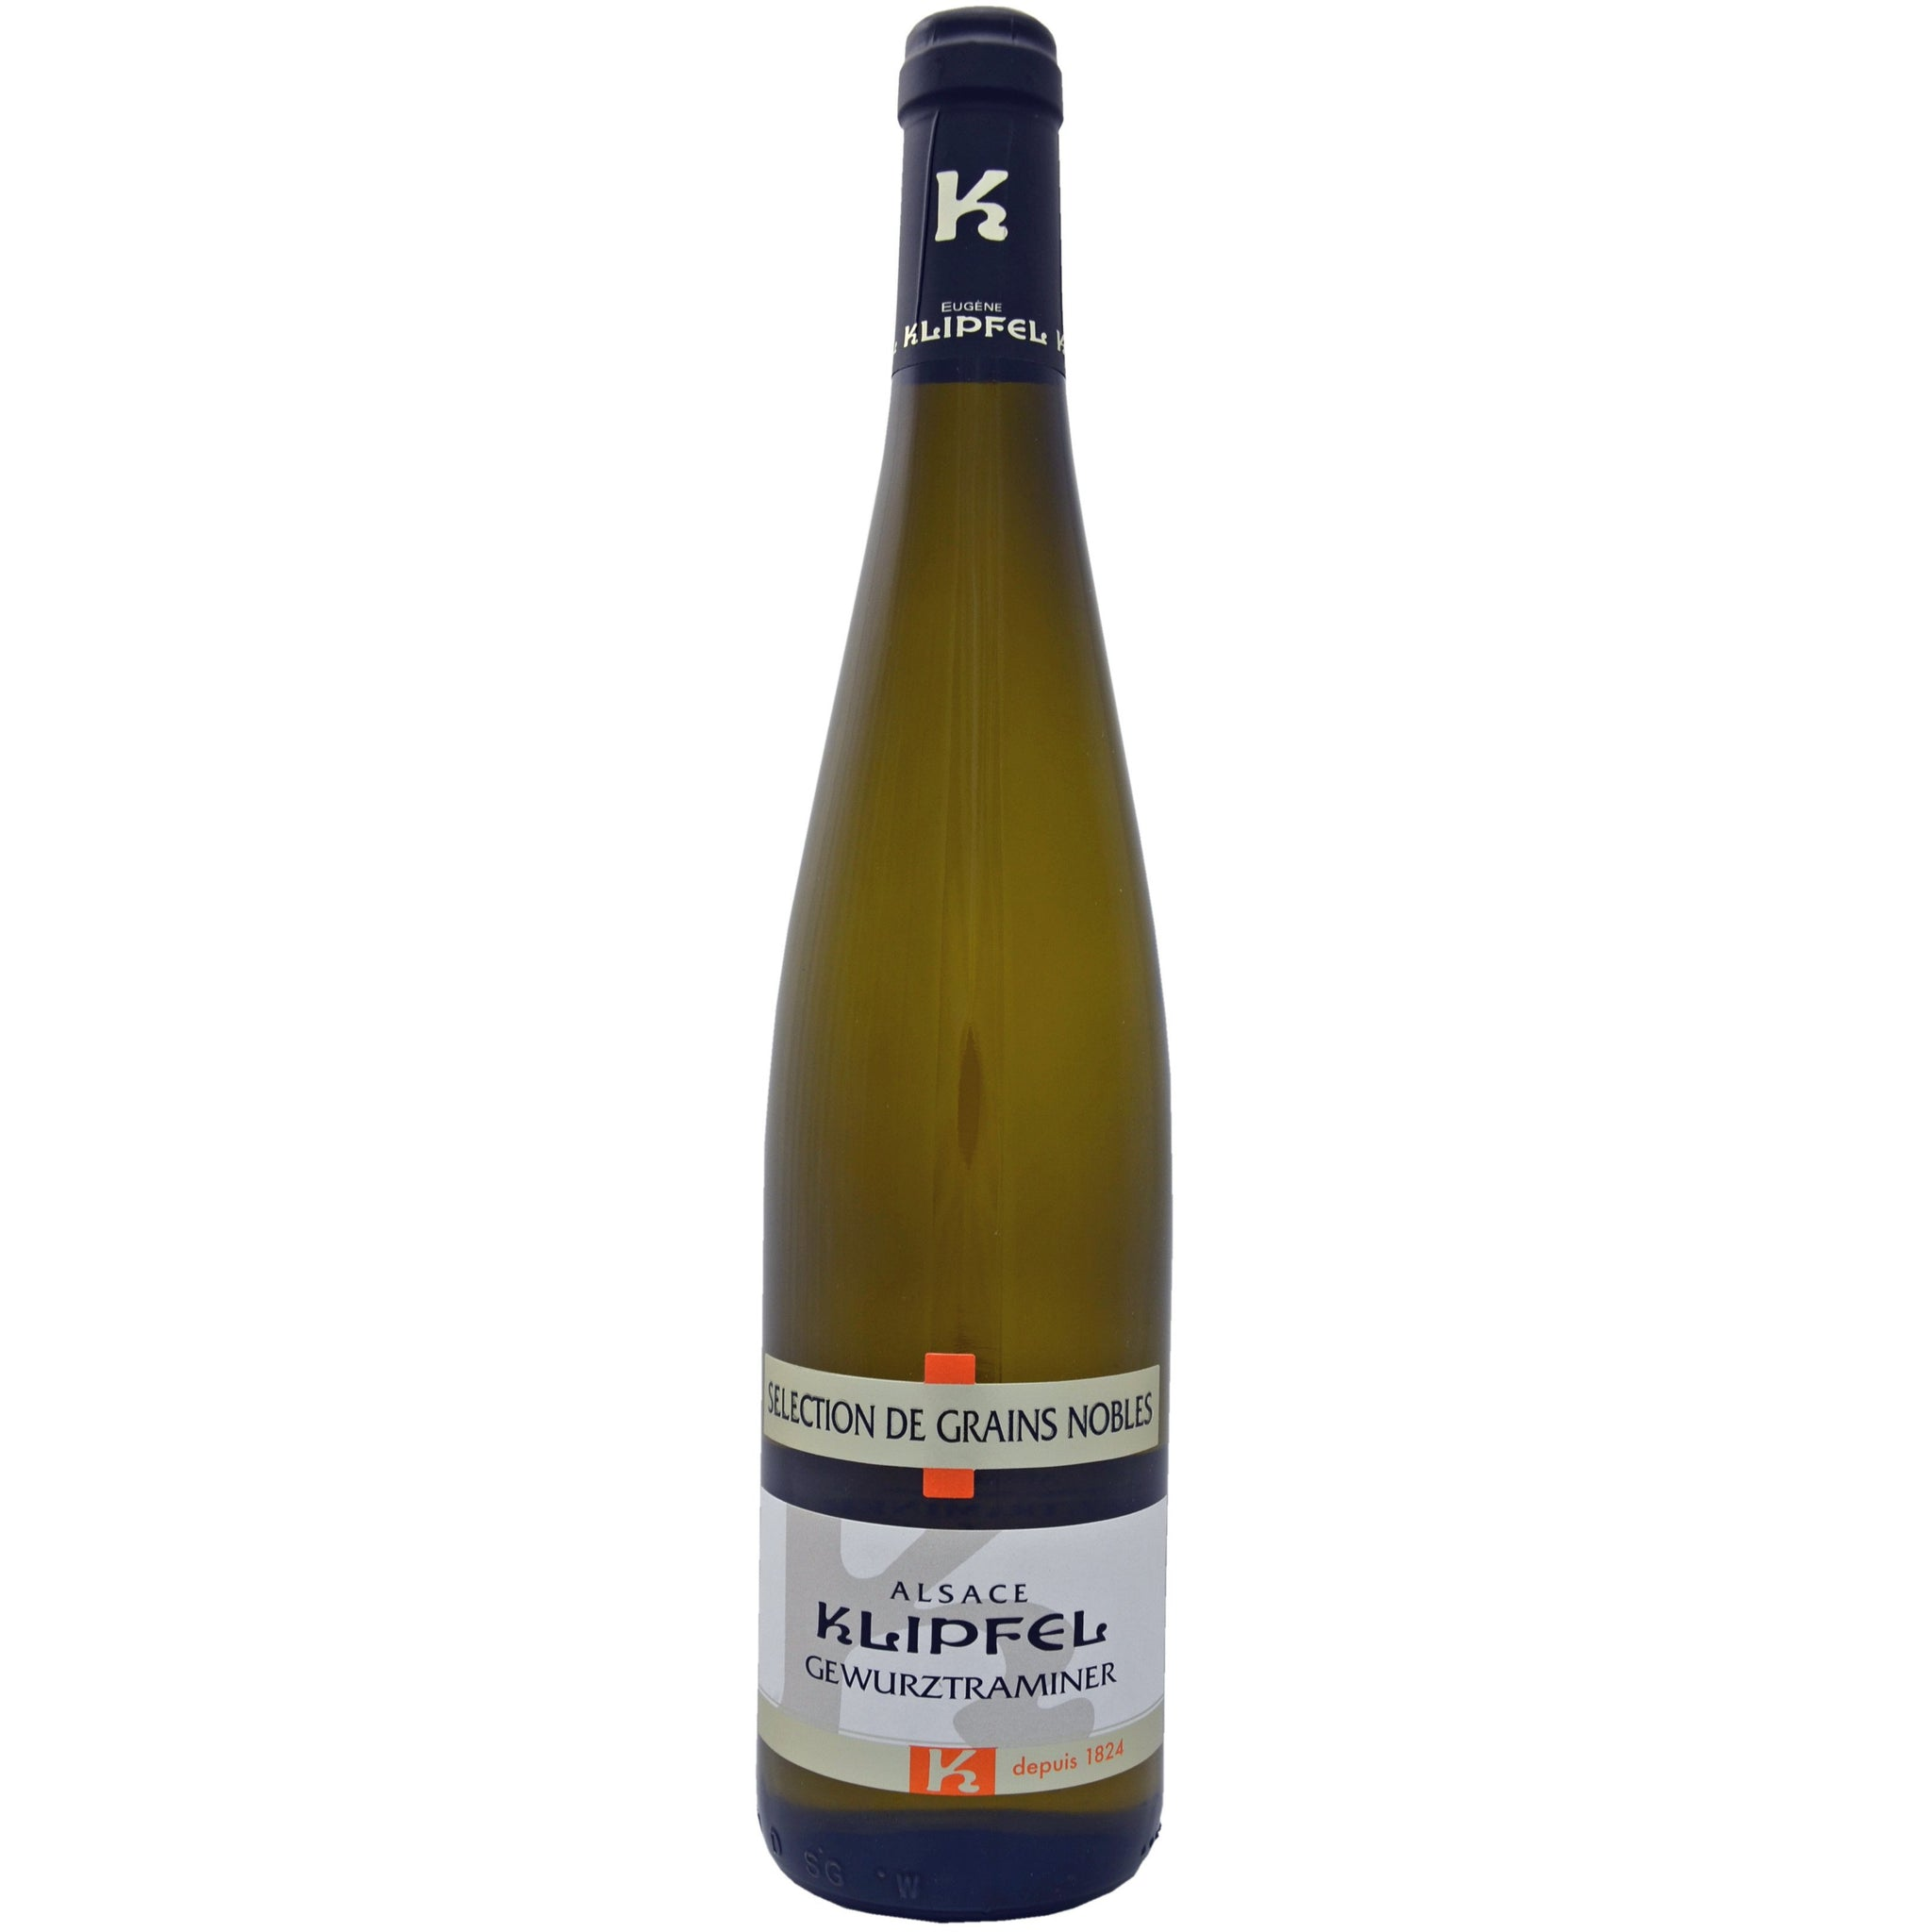 2006 Gewurztraminer Selection Grains Noble, Klipfel - Ludv. Bjørns Vinhandel